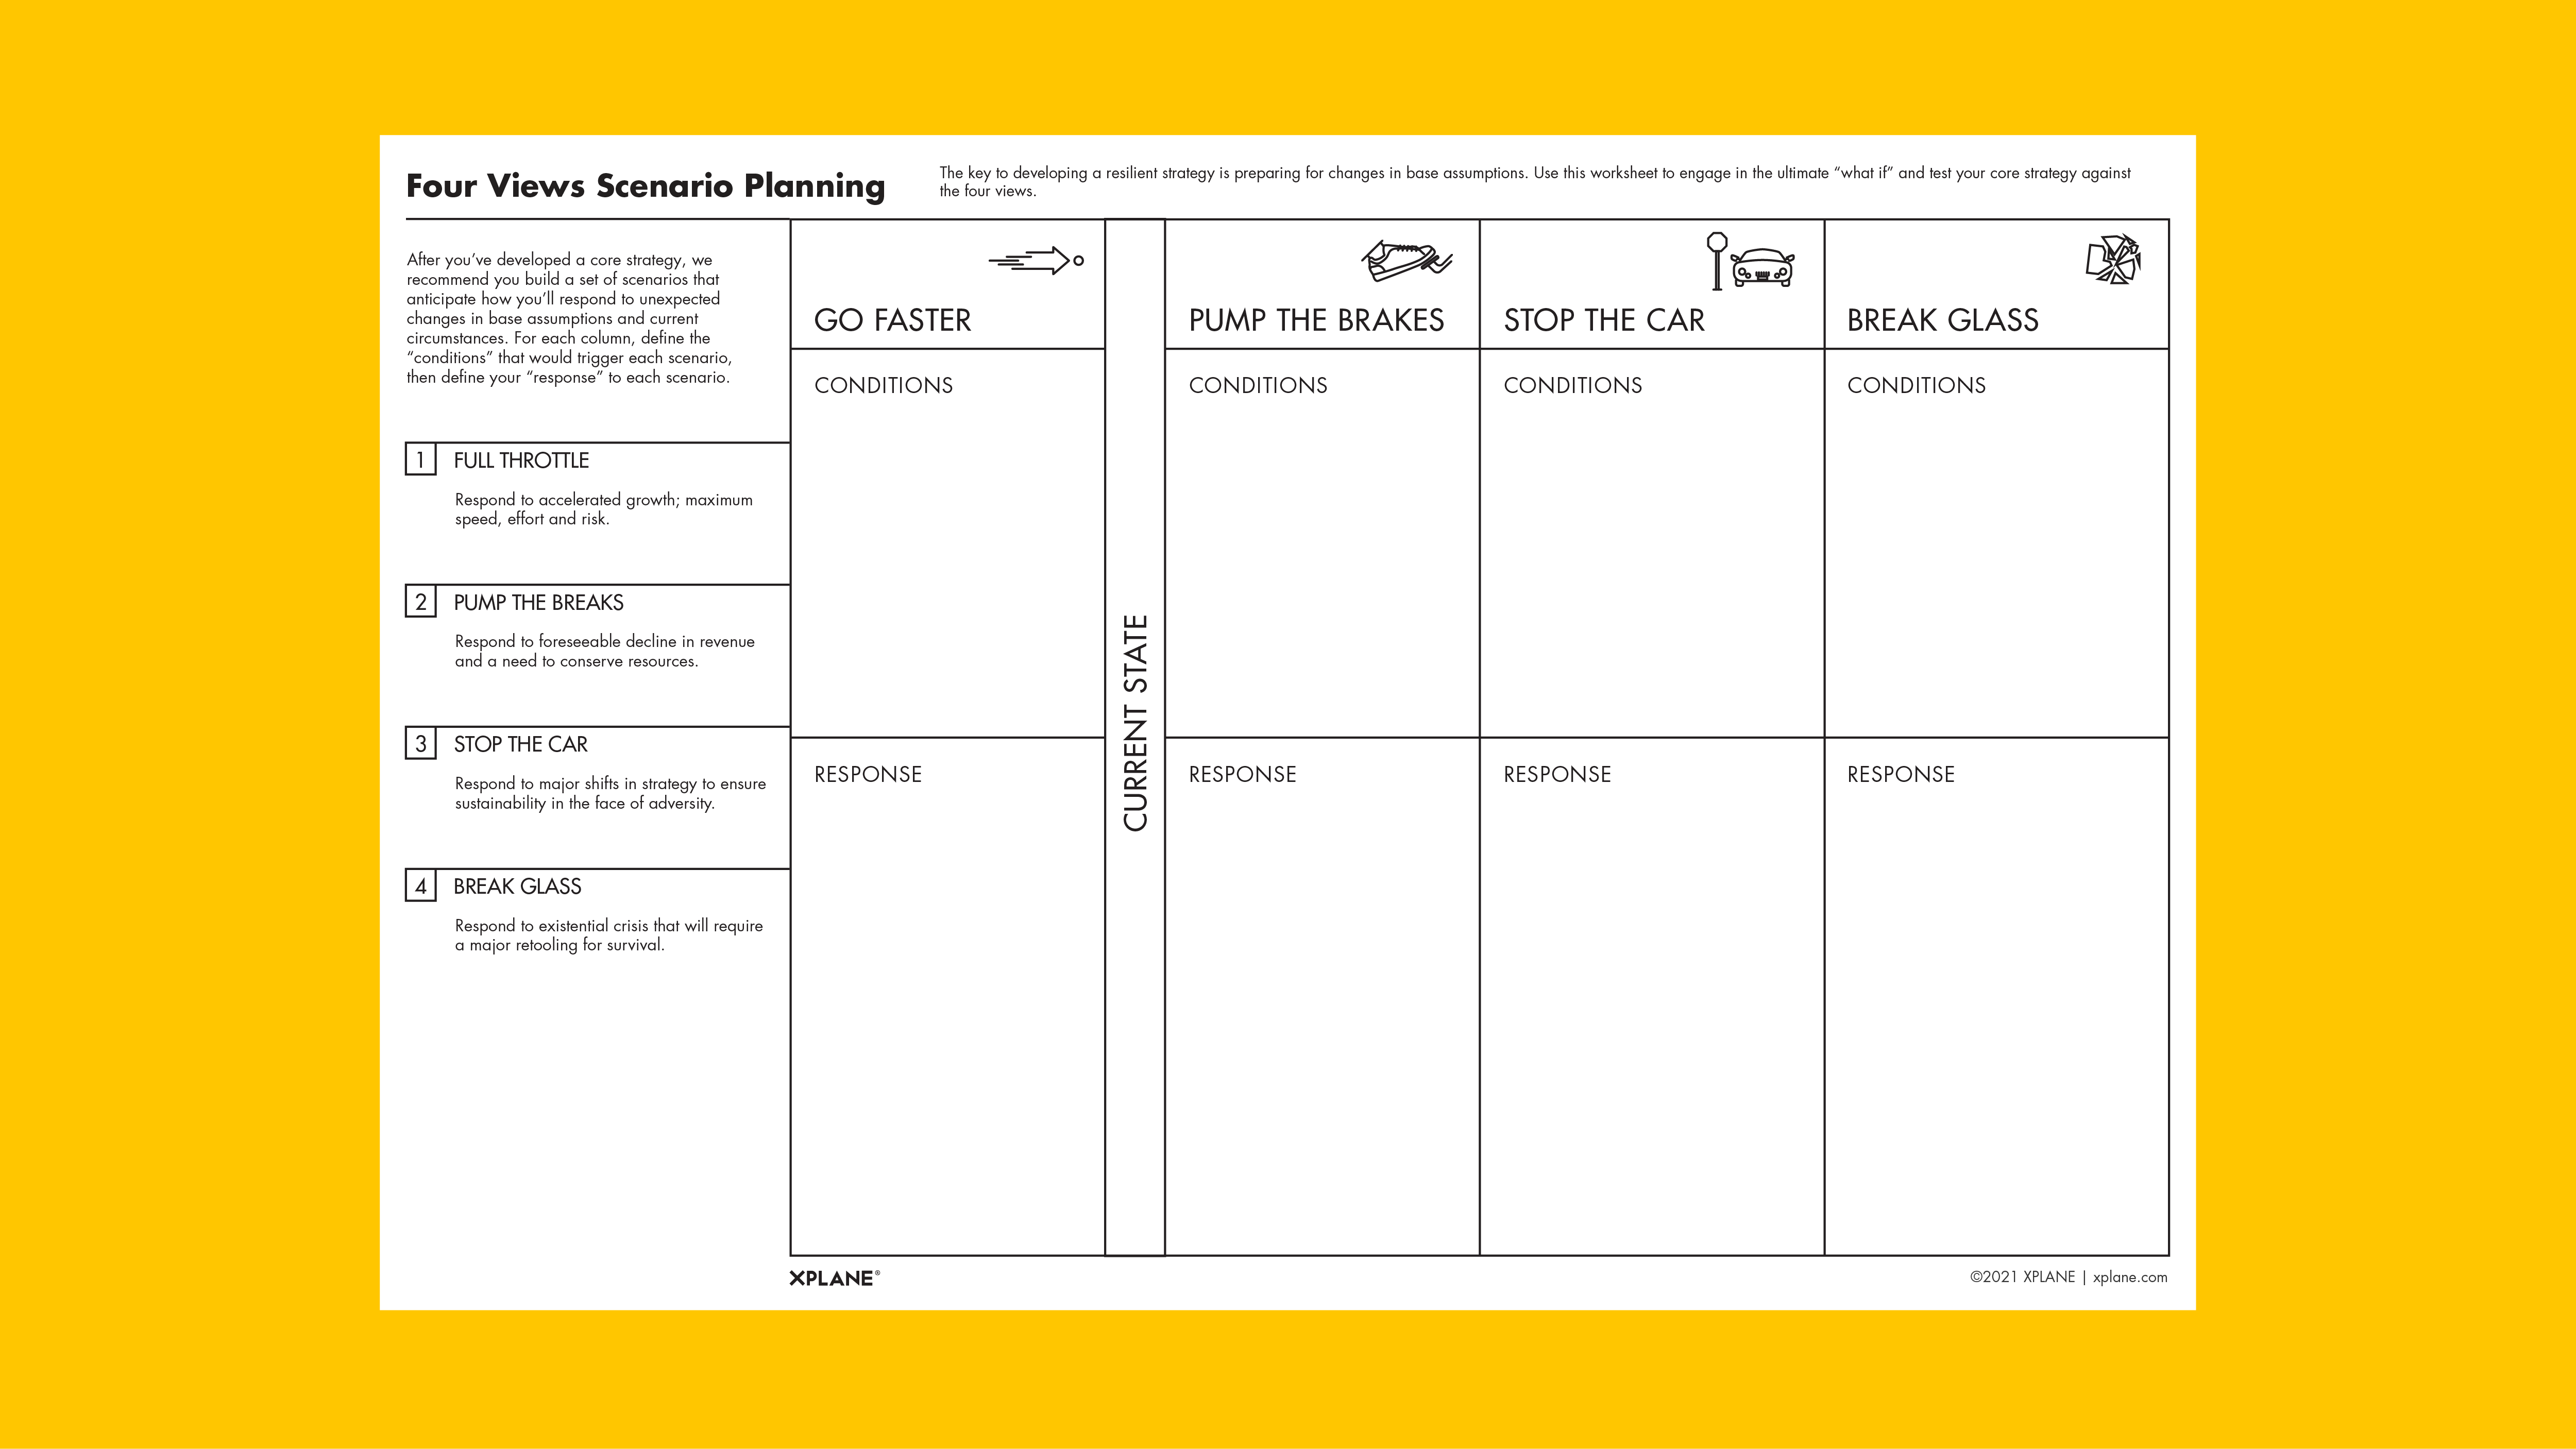 Four Views Scenario Planning worksheet against a yellow background